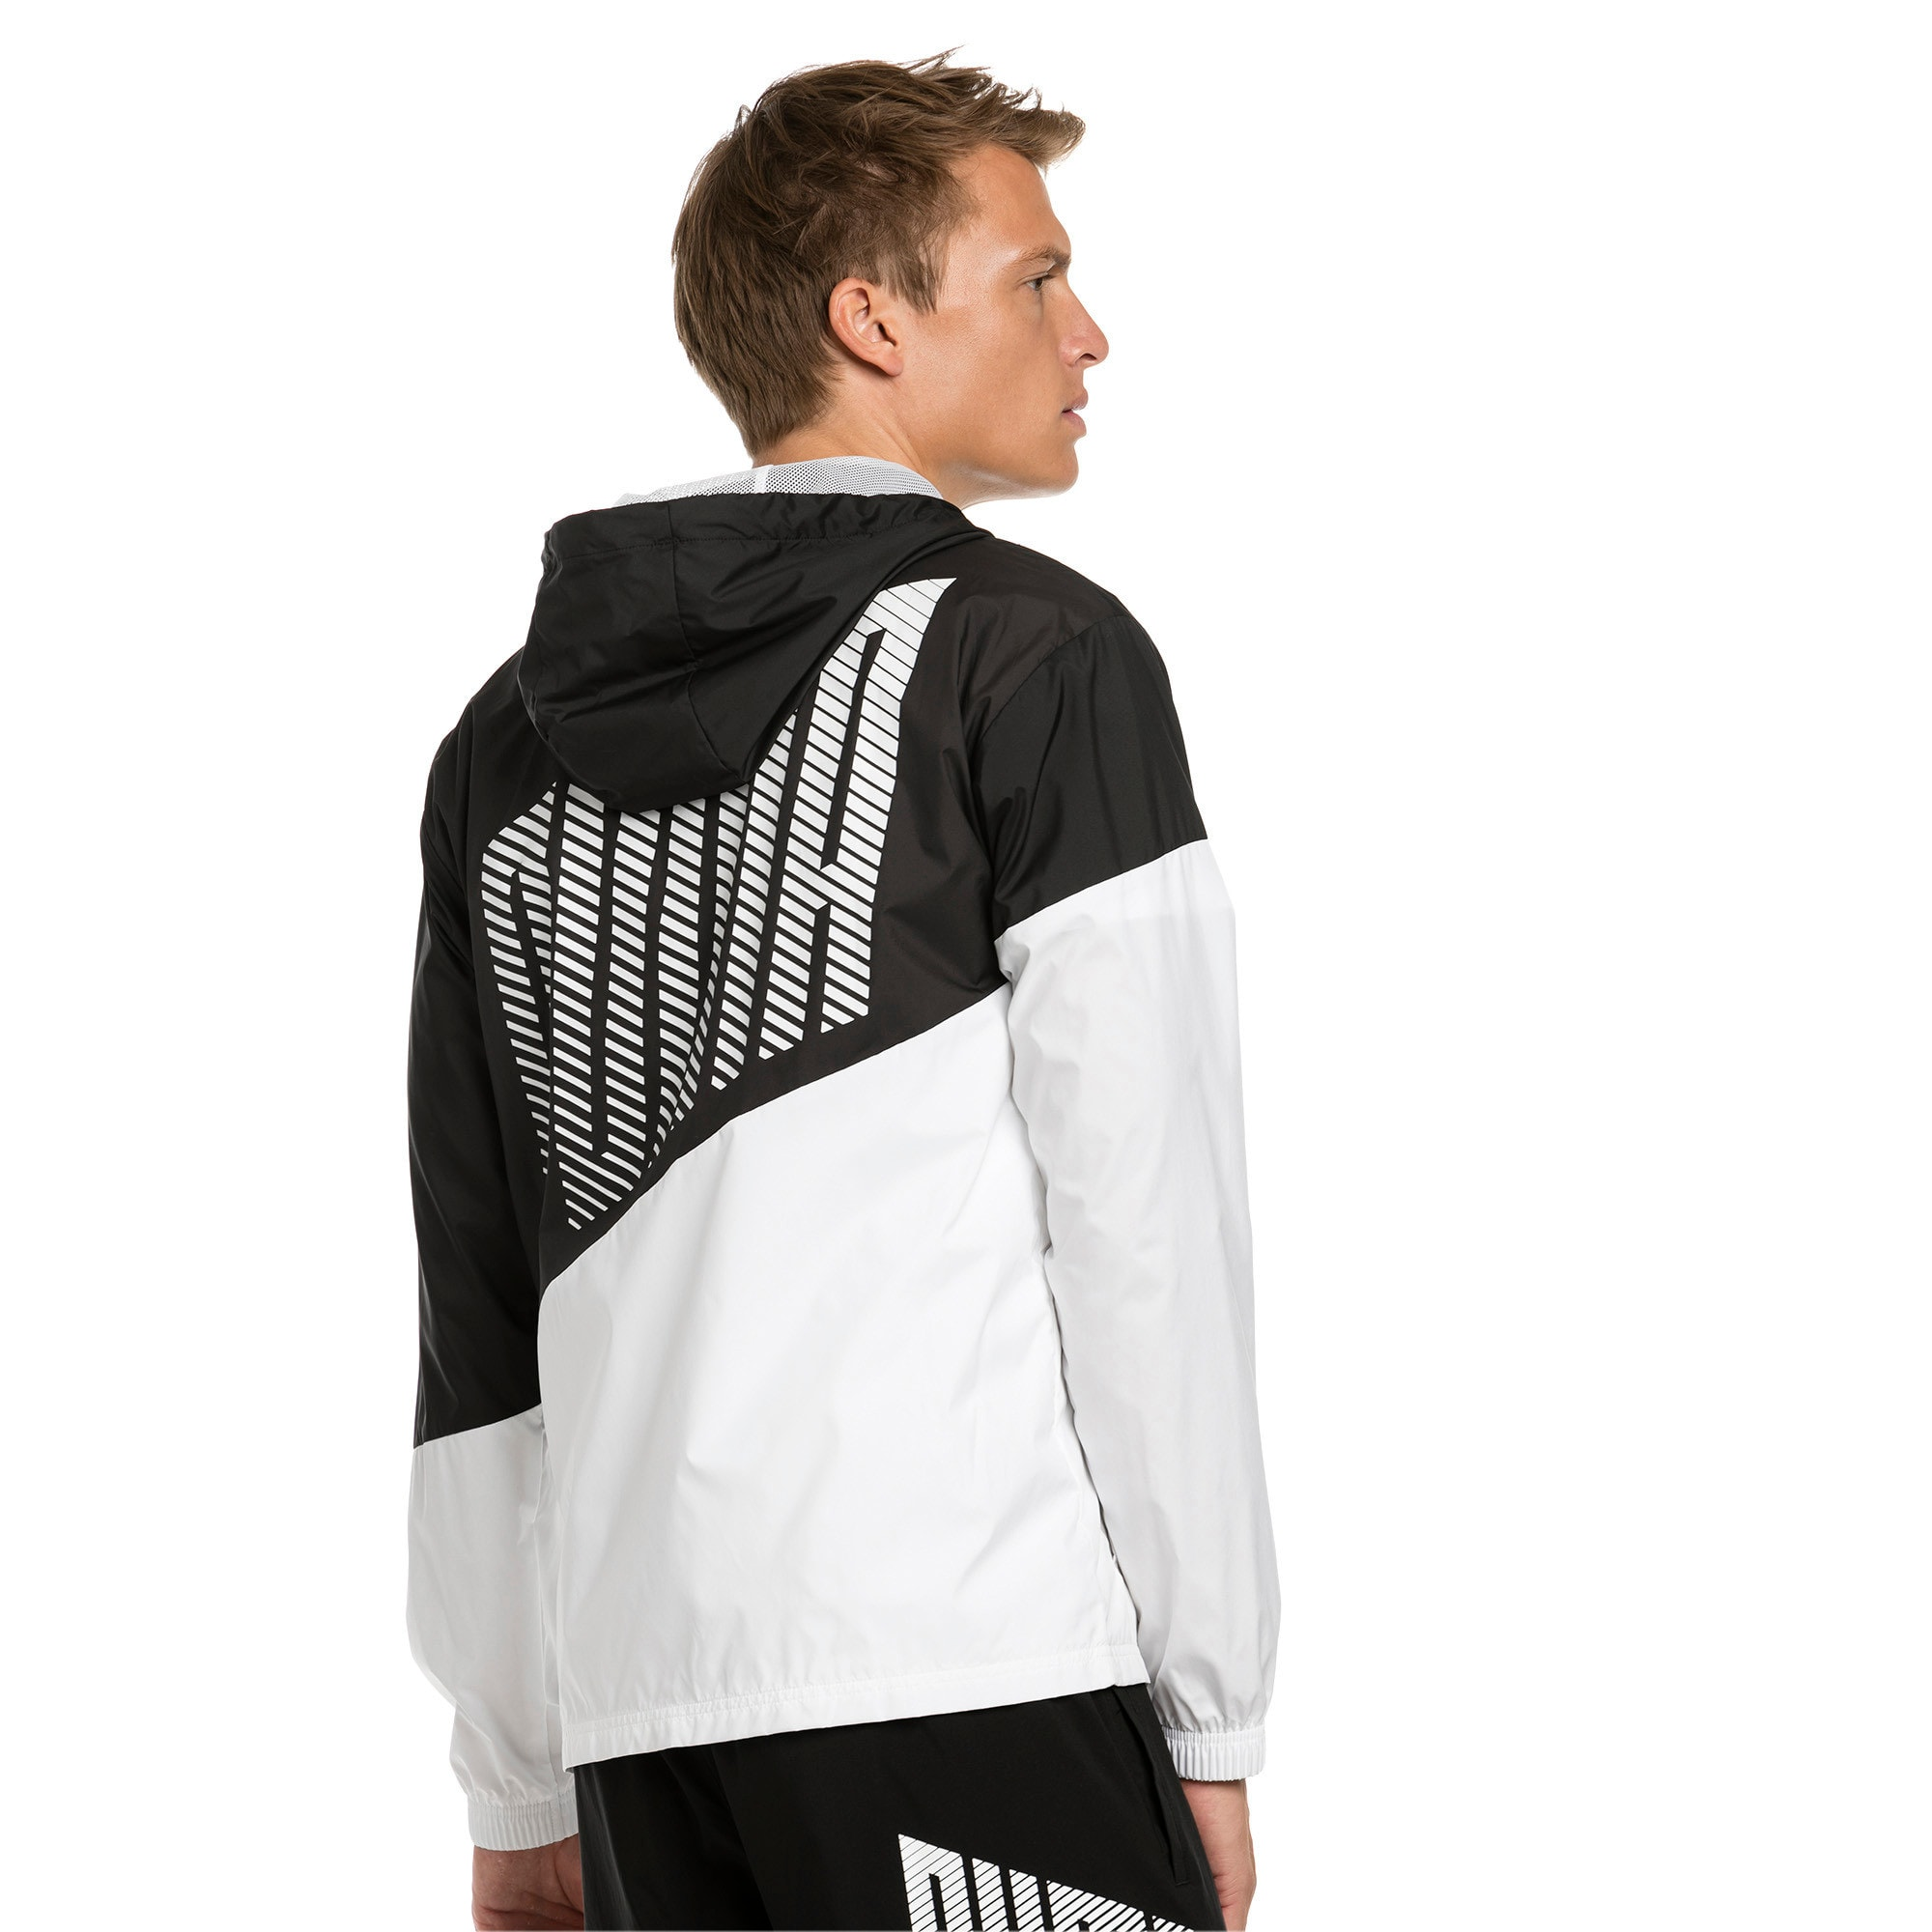 Thumbnail 2 of A.C.E. Men's Windbreaker, Puma Black-Puma White, medium